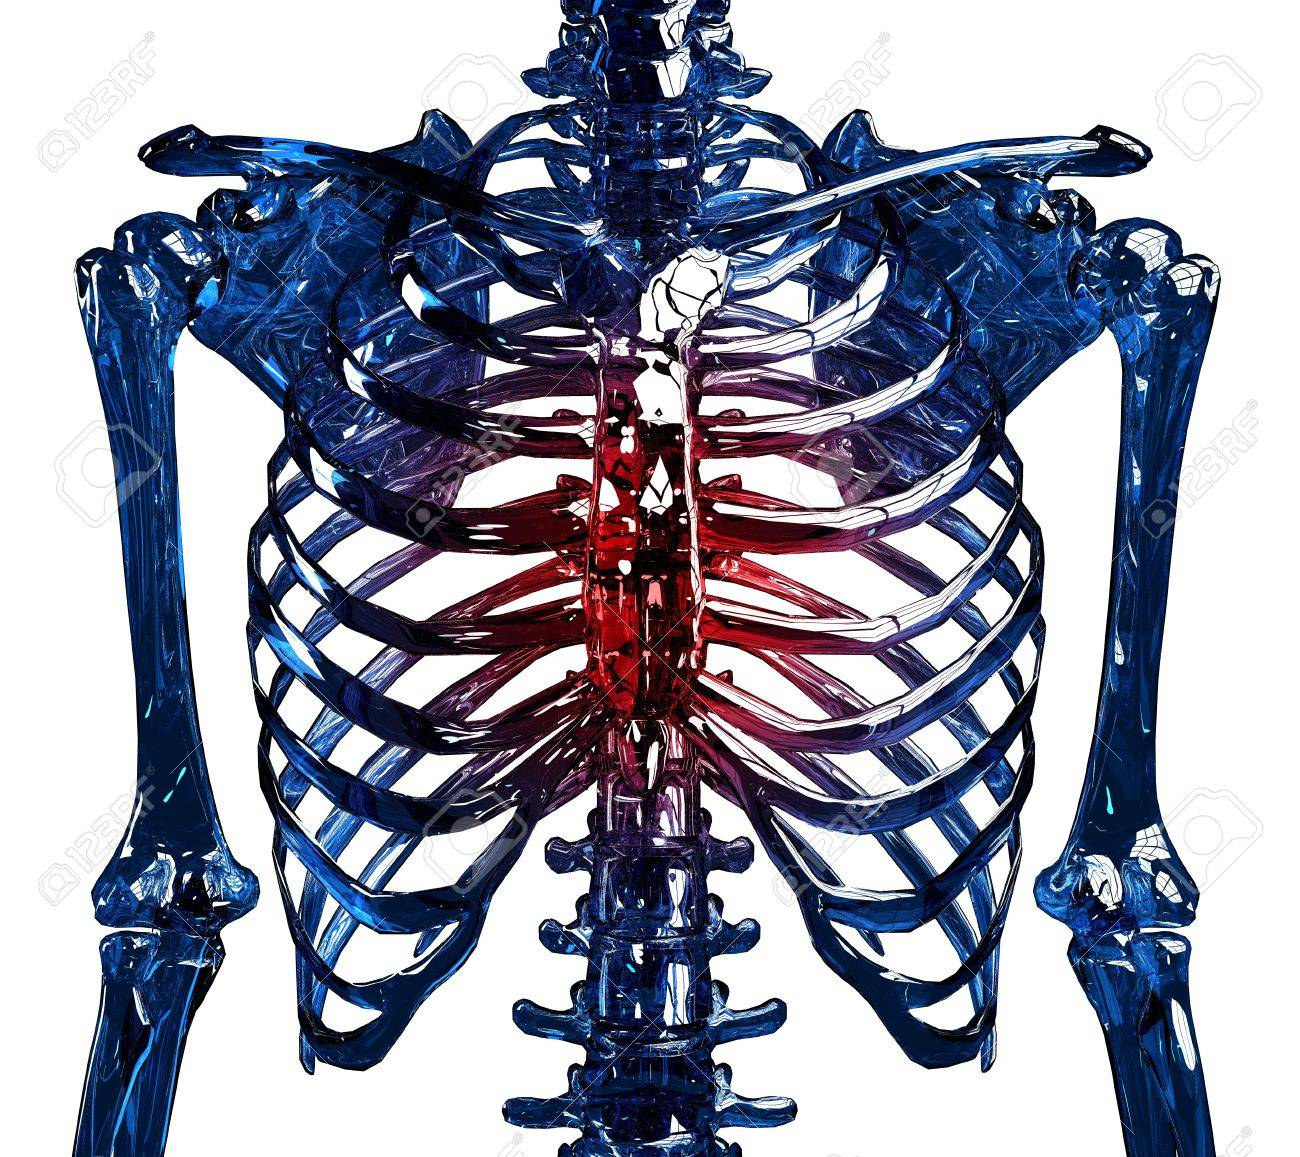 frontal view of a human skeleton chest and ribs made in 3d, Skeleton